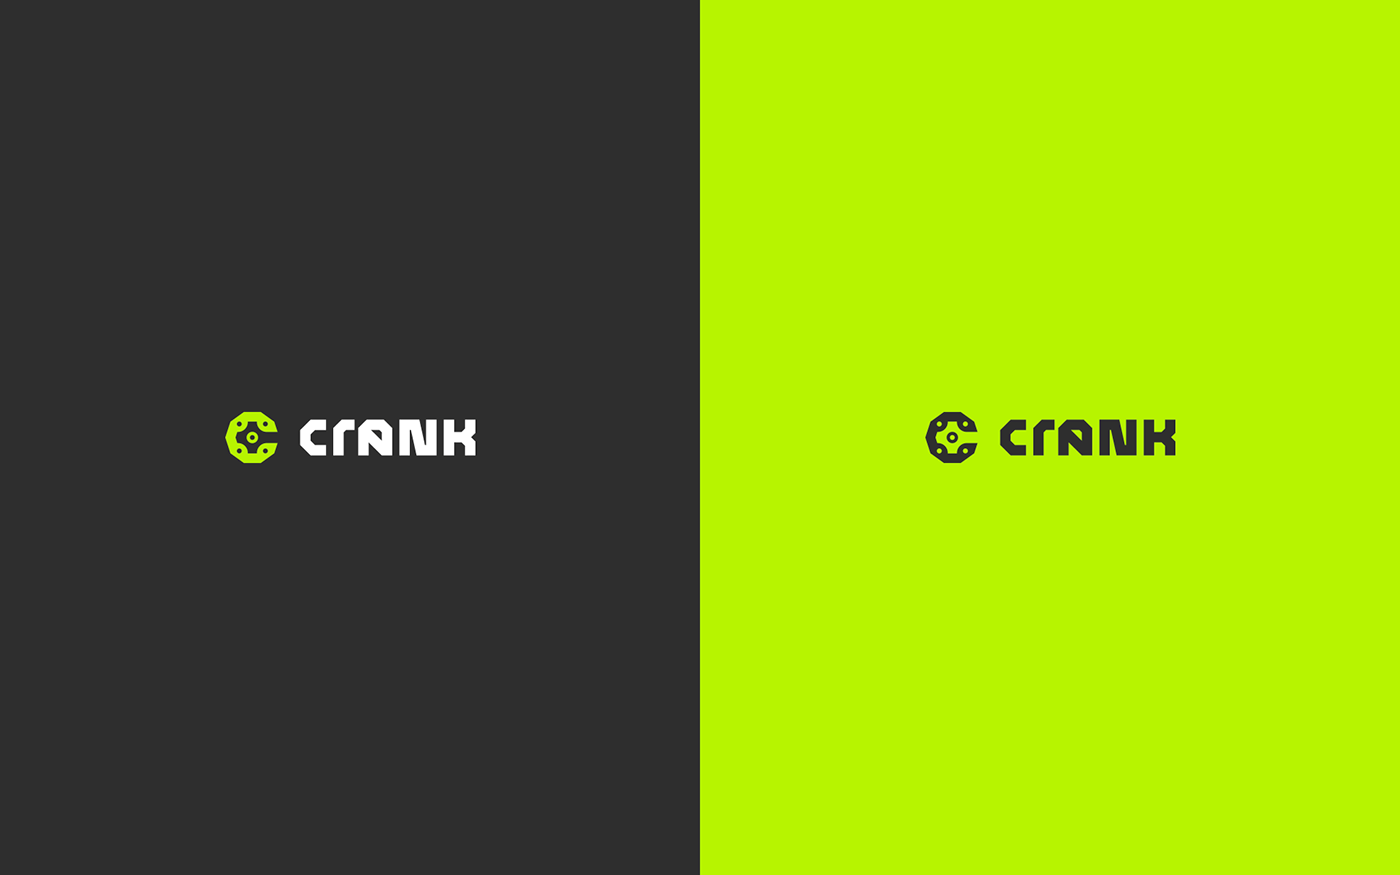 CRANK - Bicycle Branding